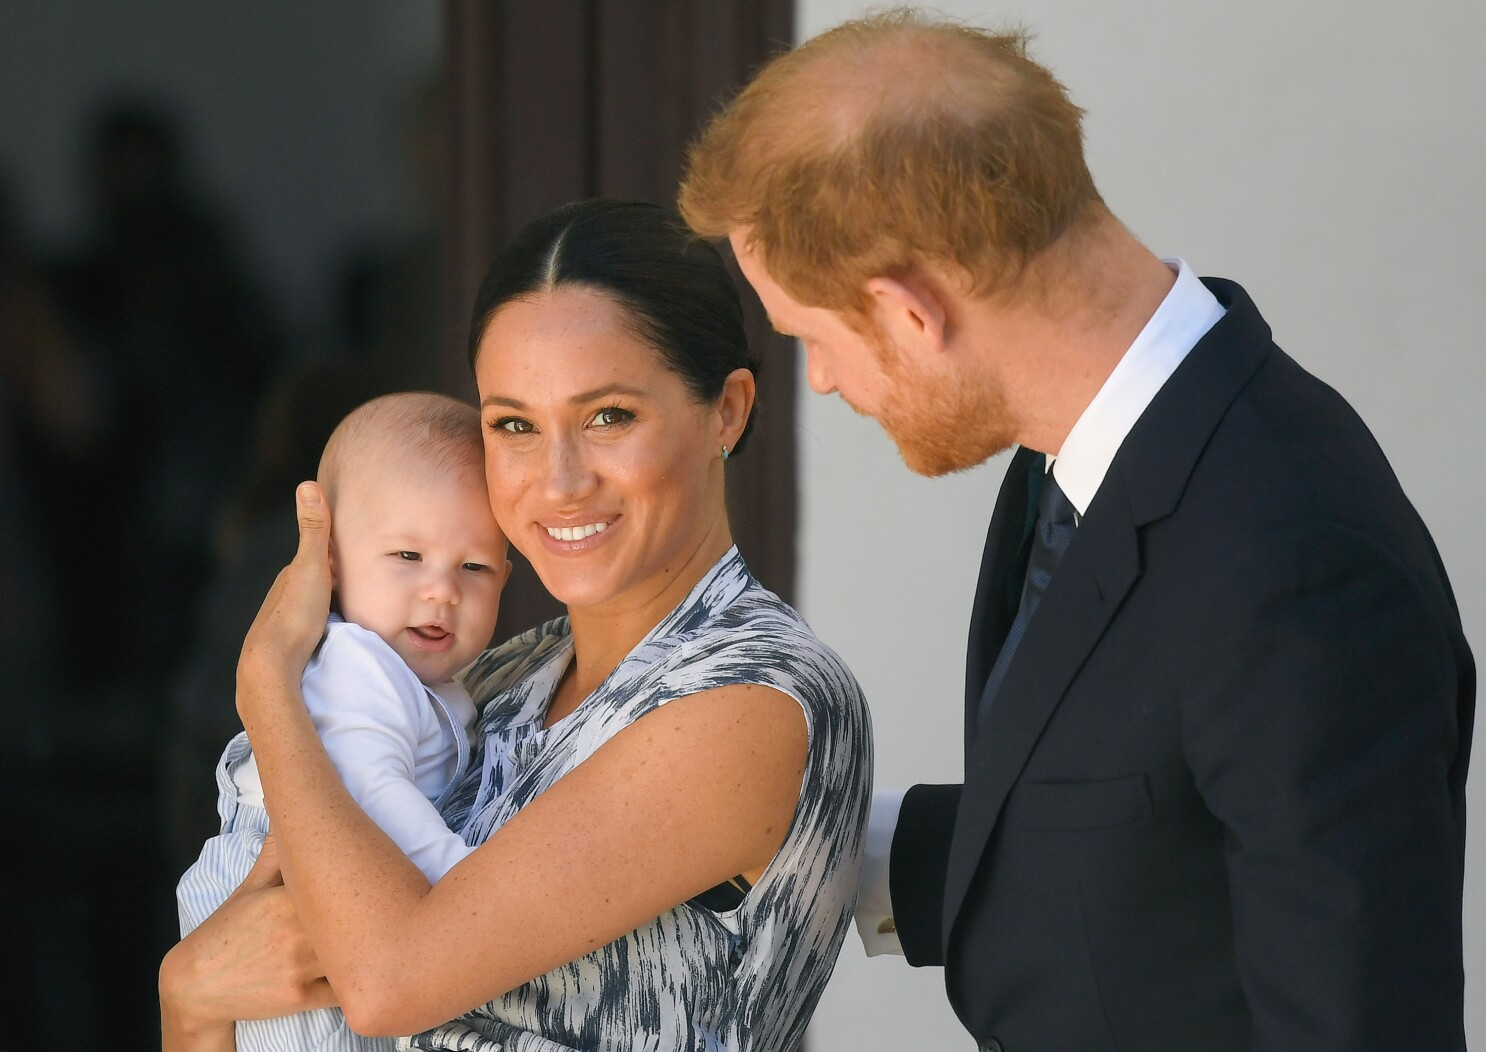 meghan markle prince harry get apology for baby archie pics los angeles times meghan markle prince harry get apology